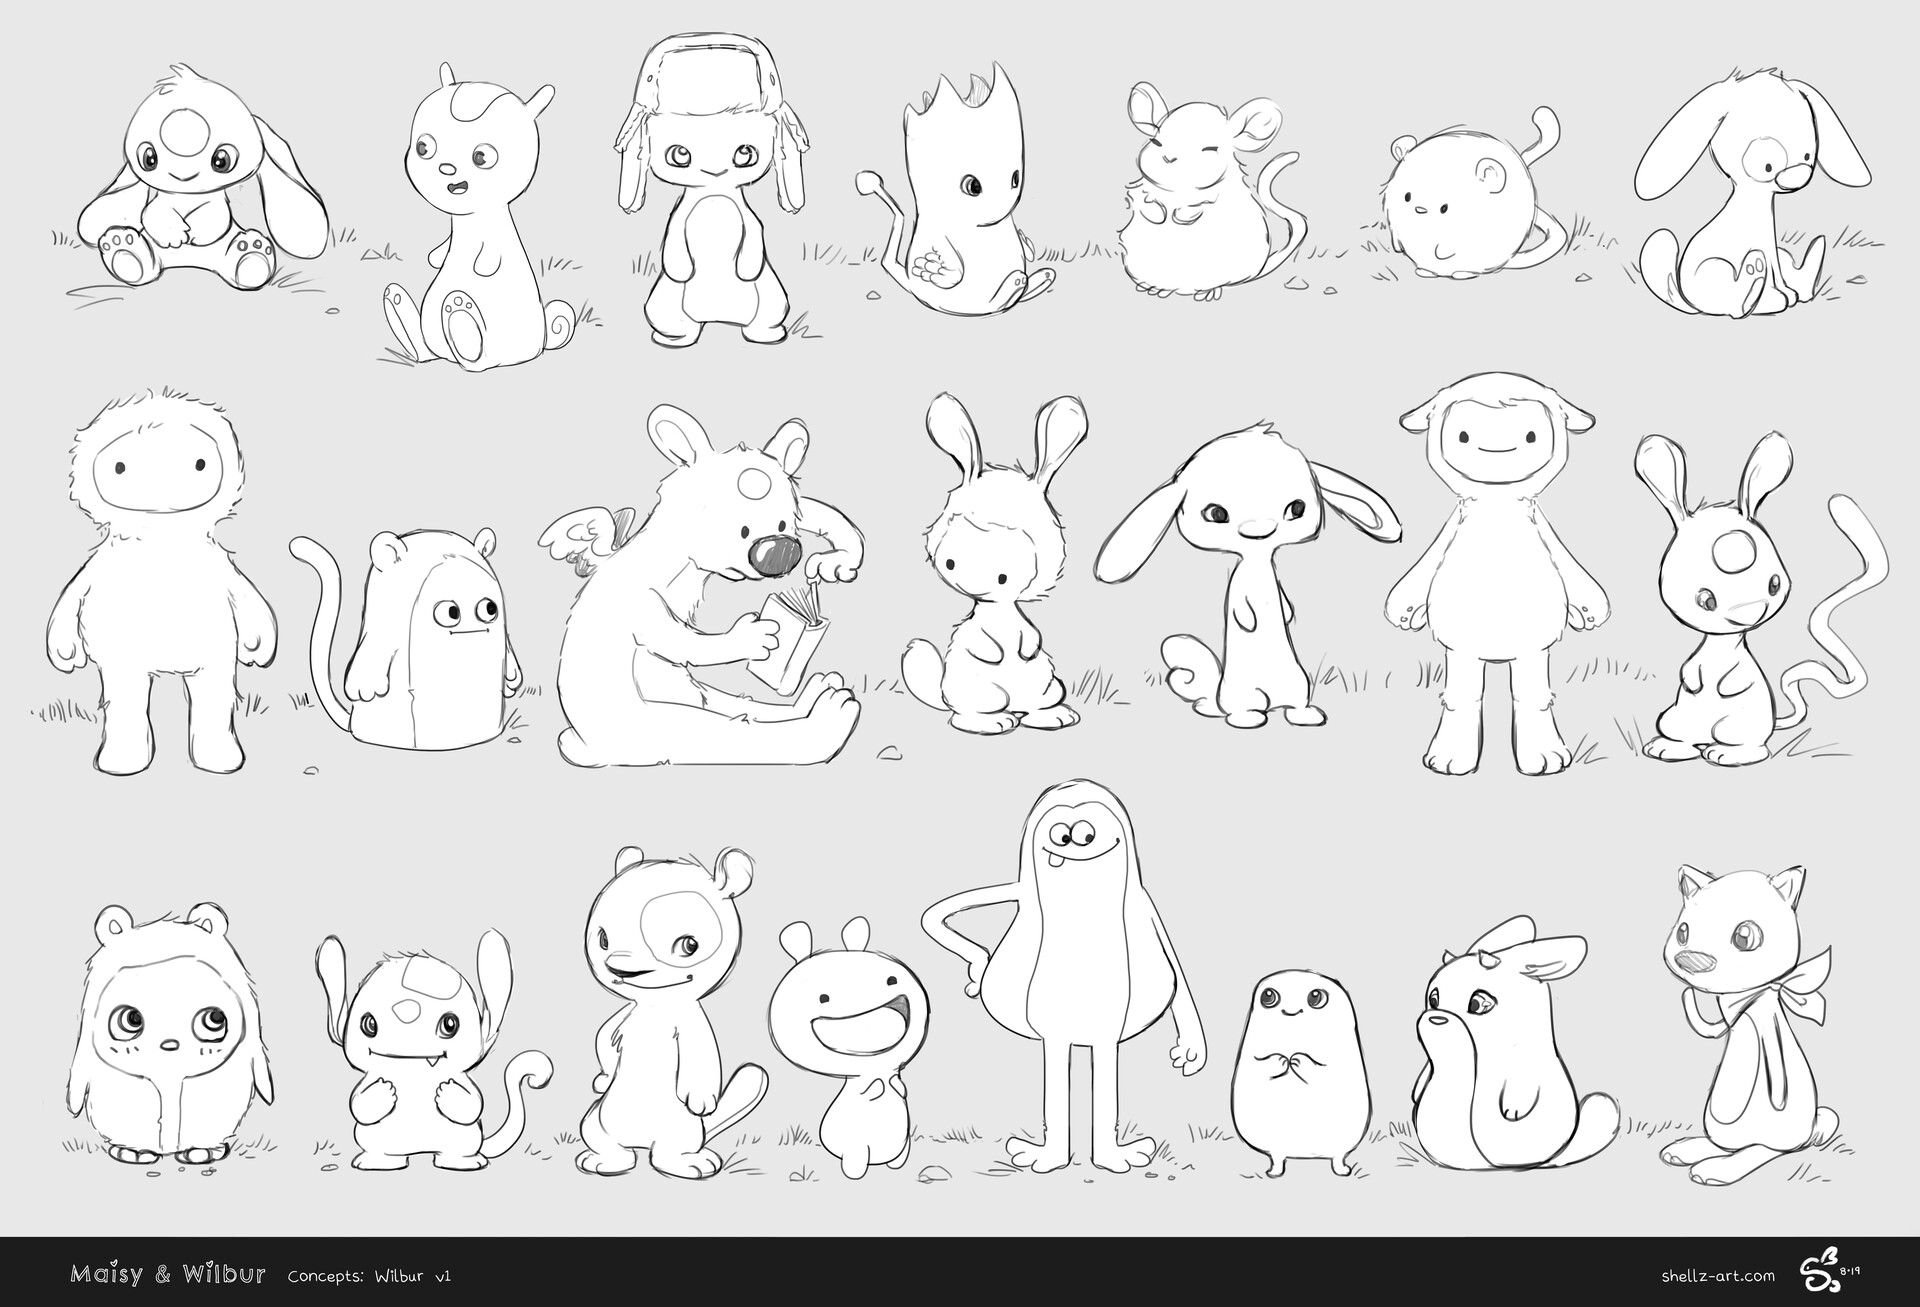 Preliminary concepts for Wilbur